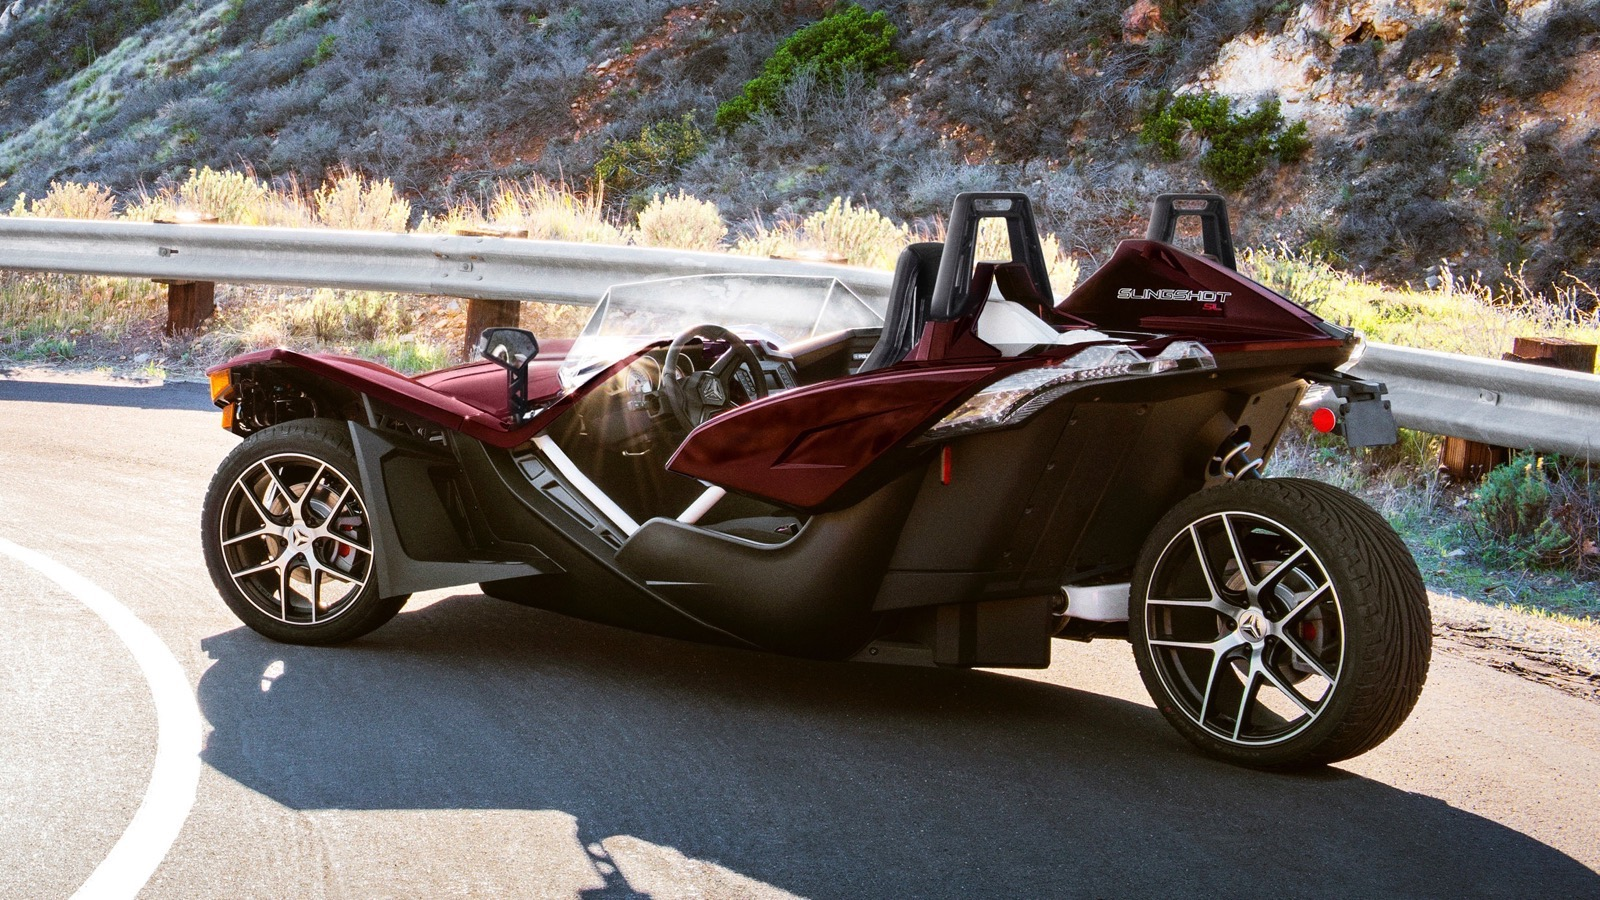 2017_Polaris_Slingshot_SL_LE_Midnight_Cherry_edition_01